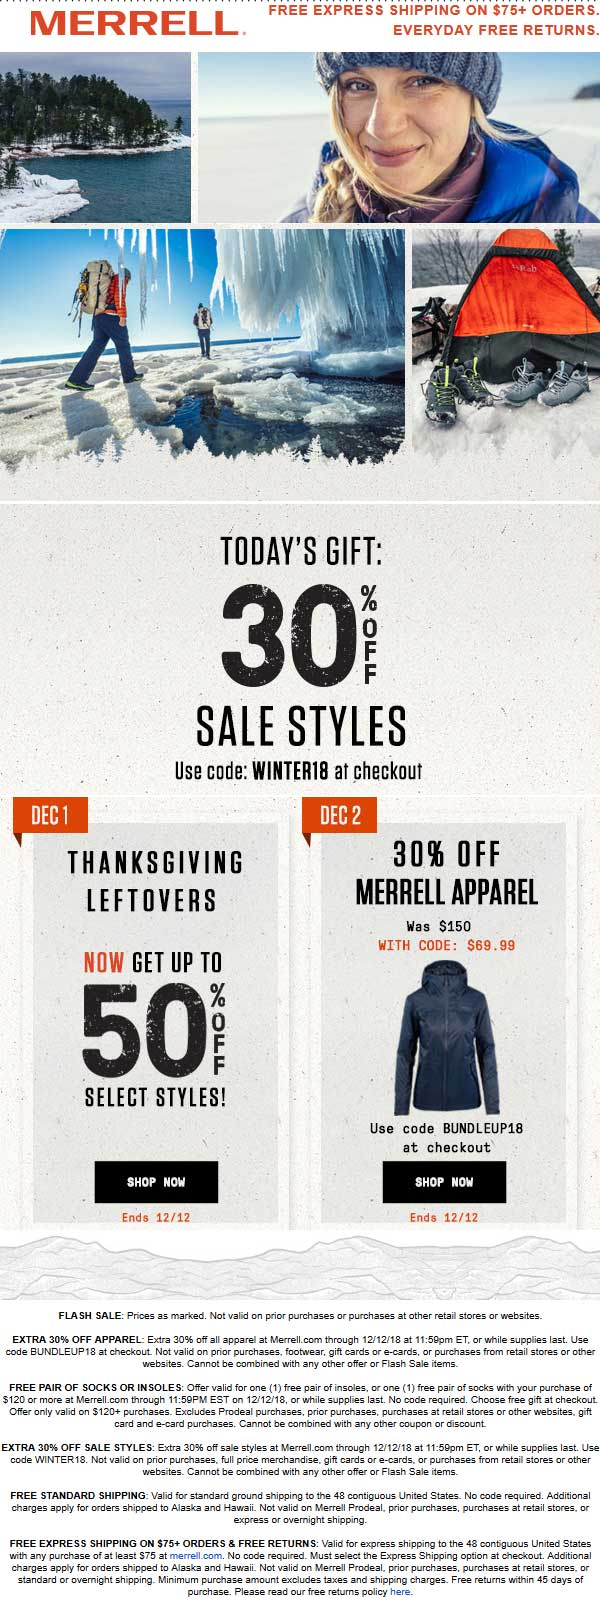 Merrell coupons & promo code for [July 2020]